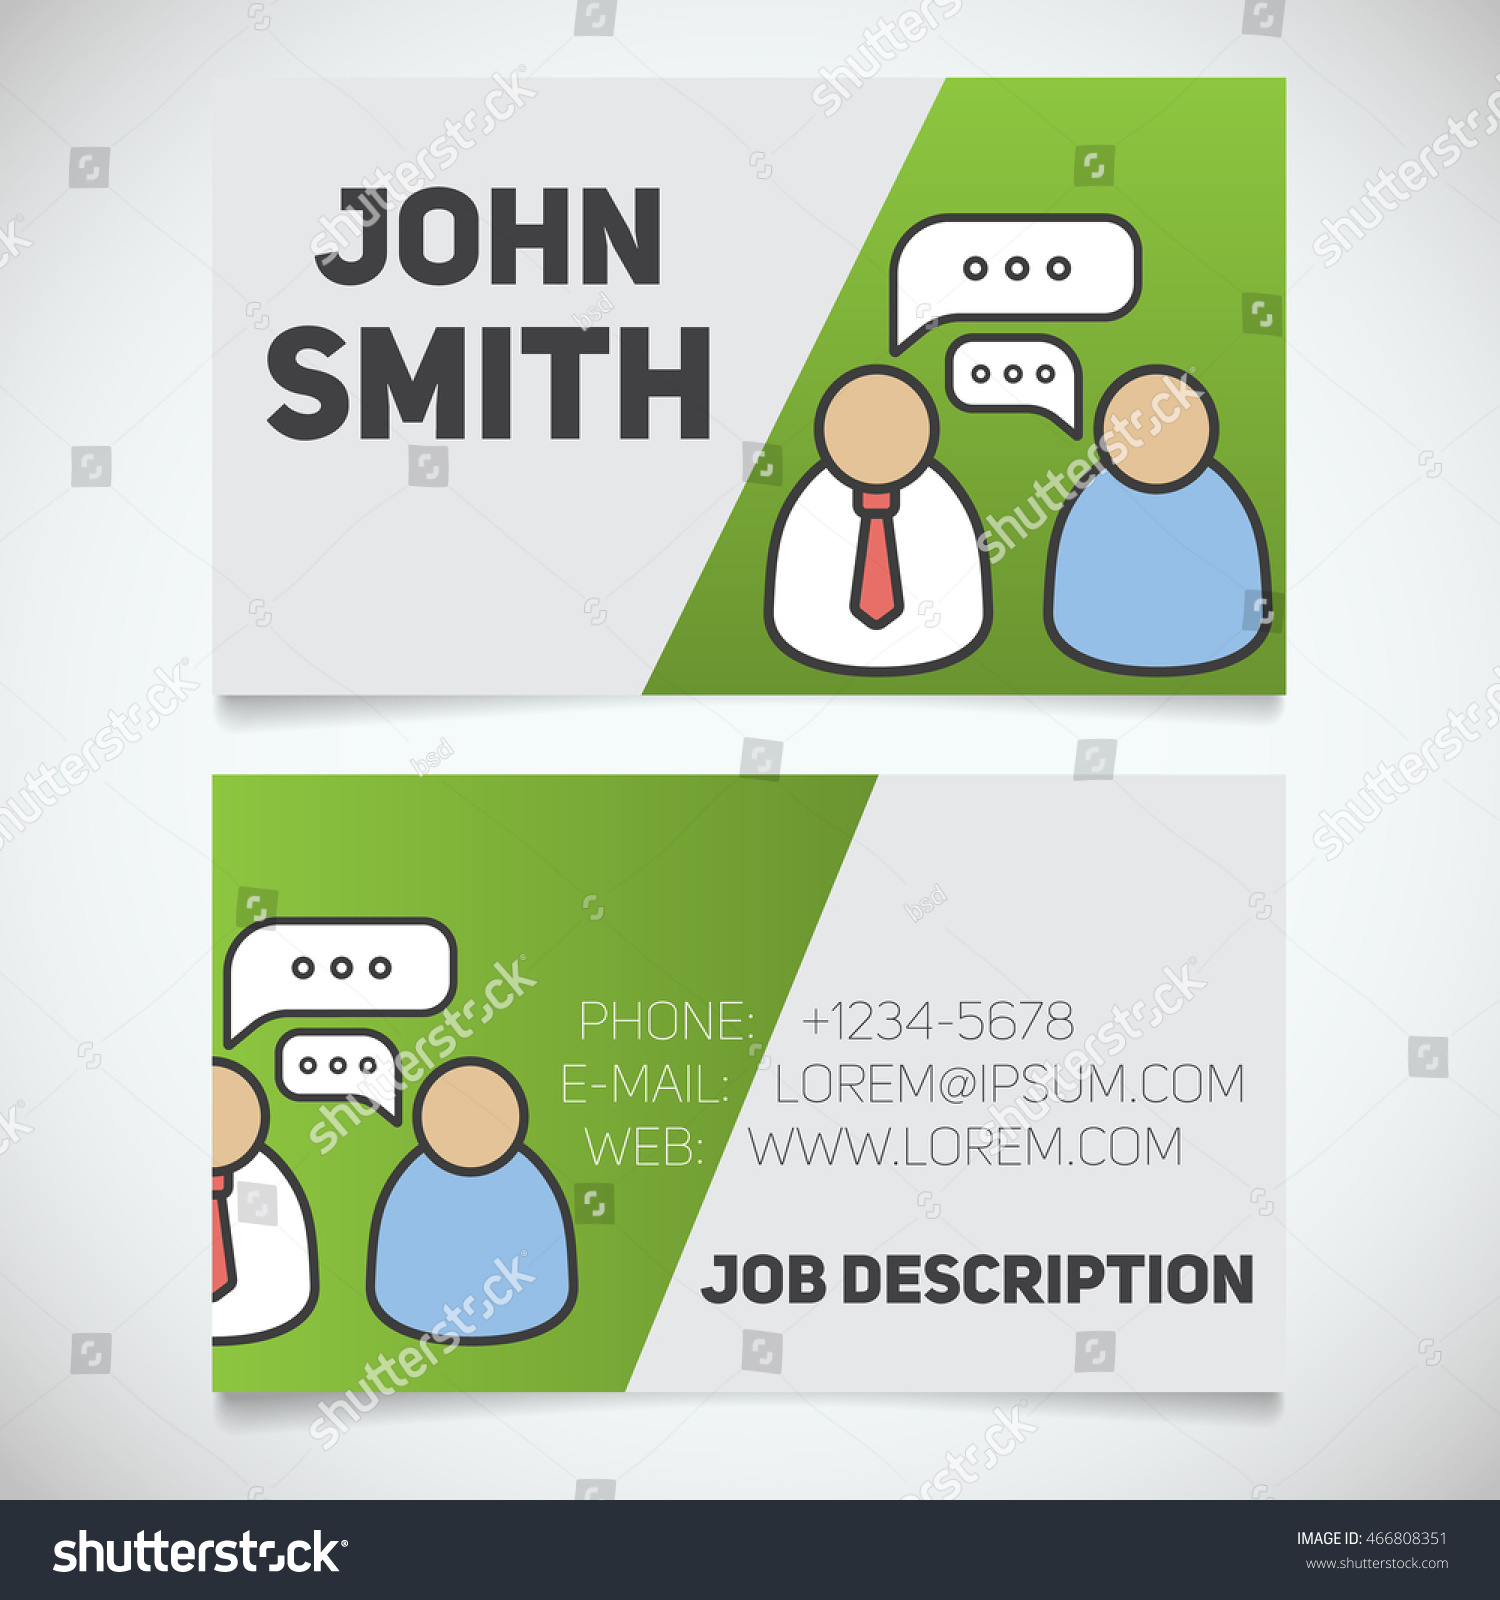 Business card print template interview logo stock vector 466808351 business card print template with interview logo easy edit manager journalist employer colourmoves